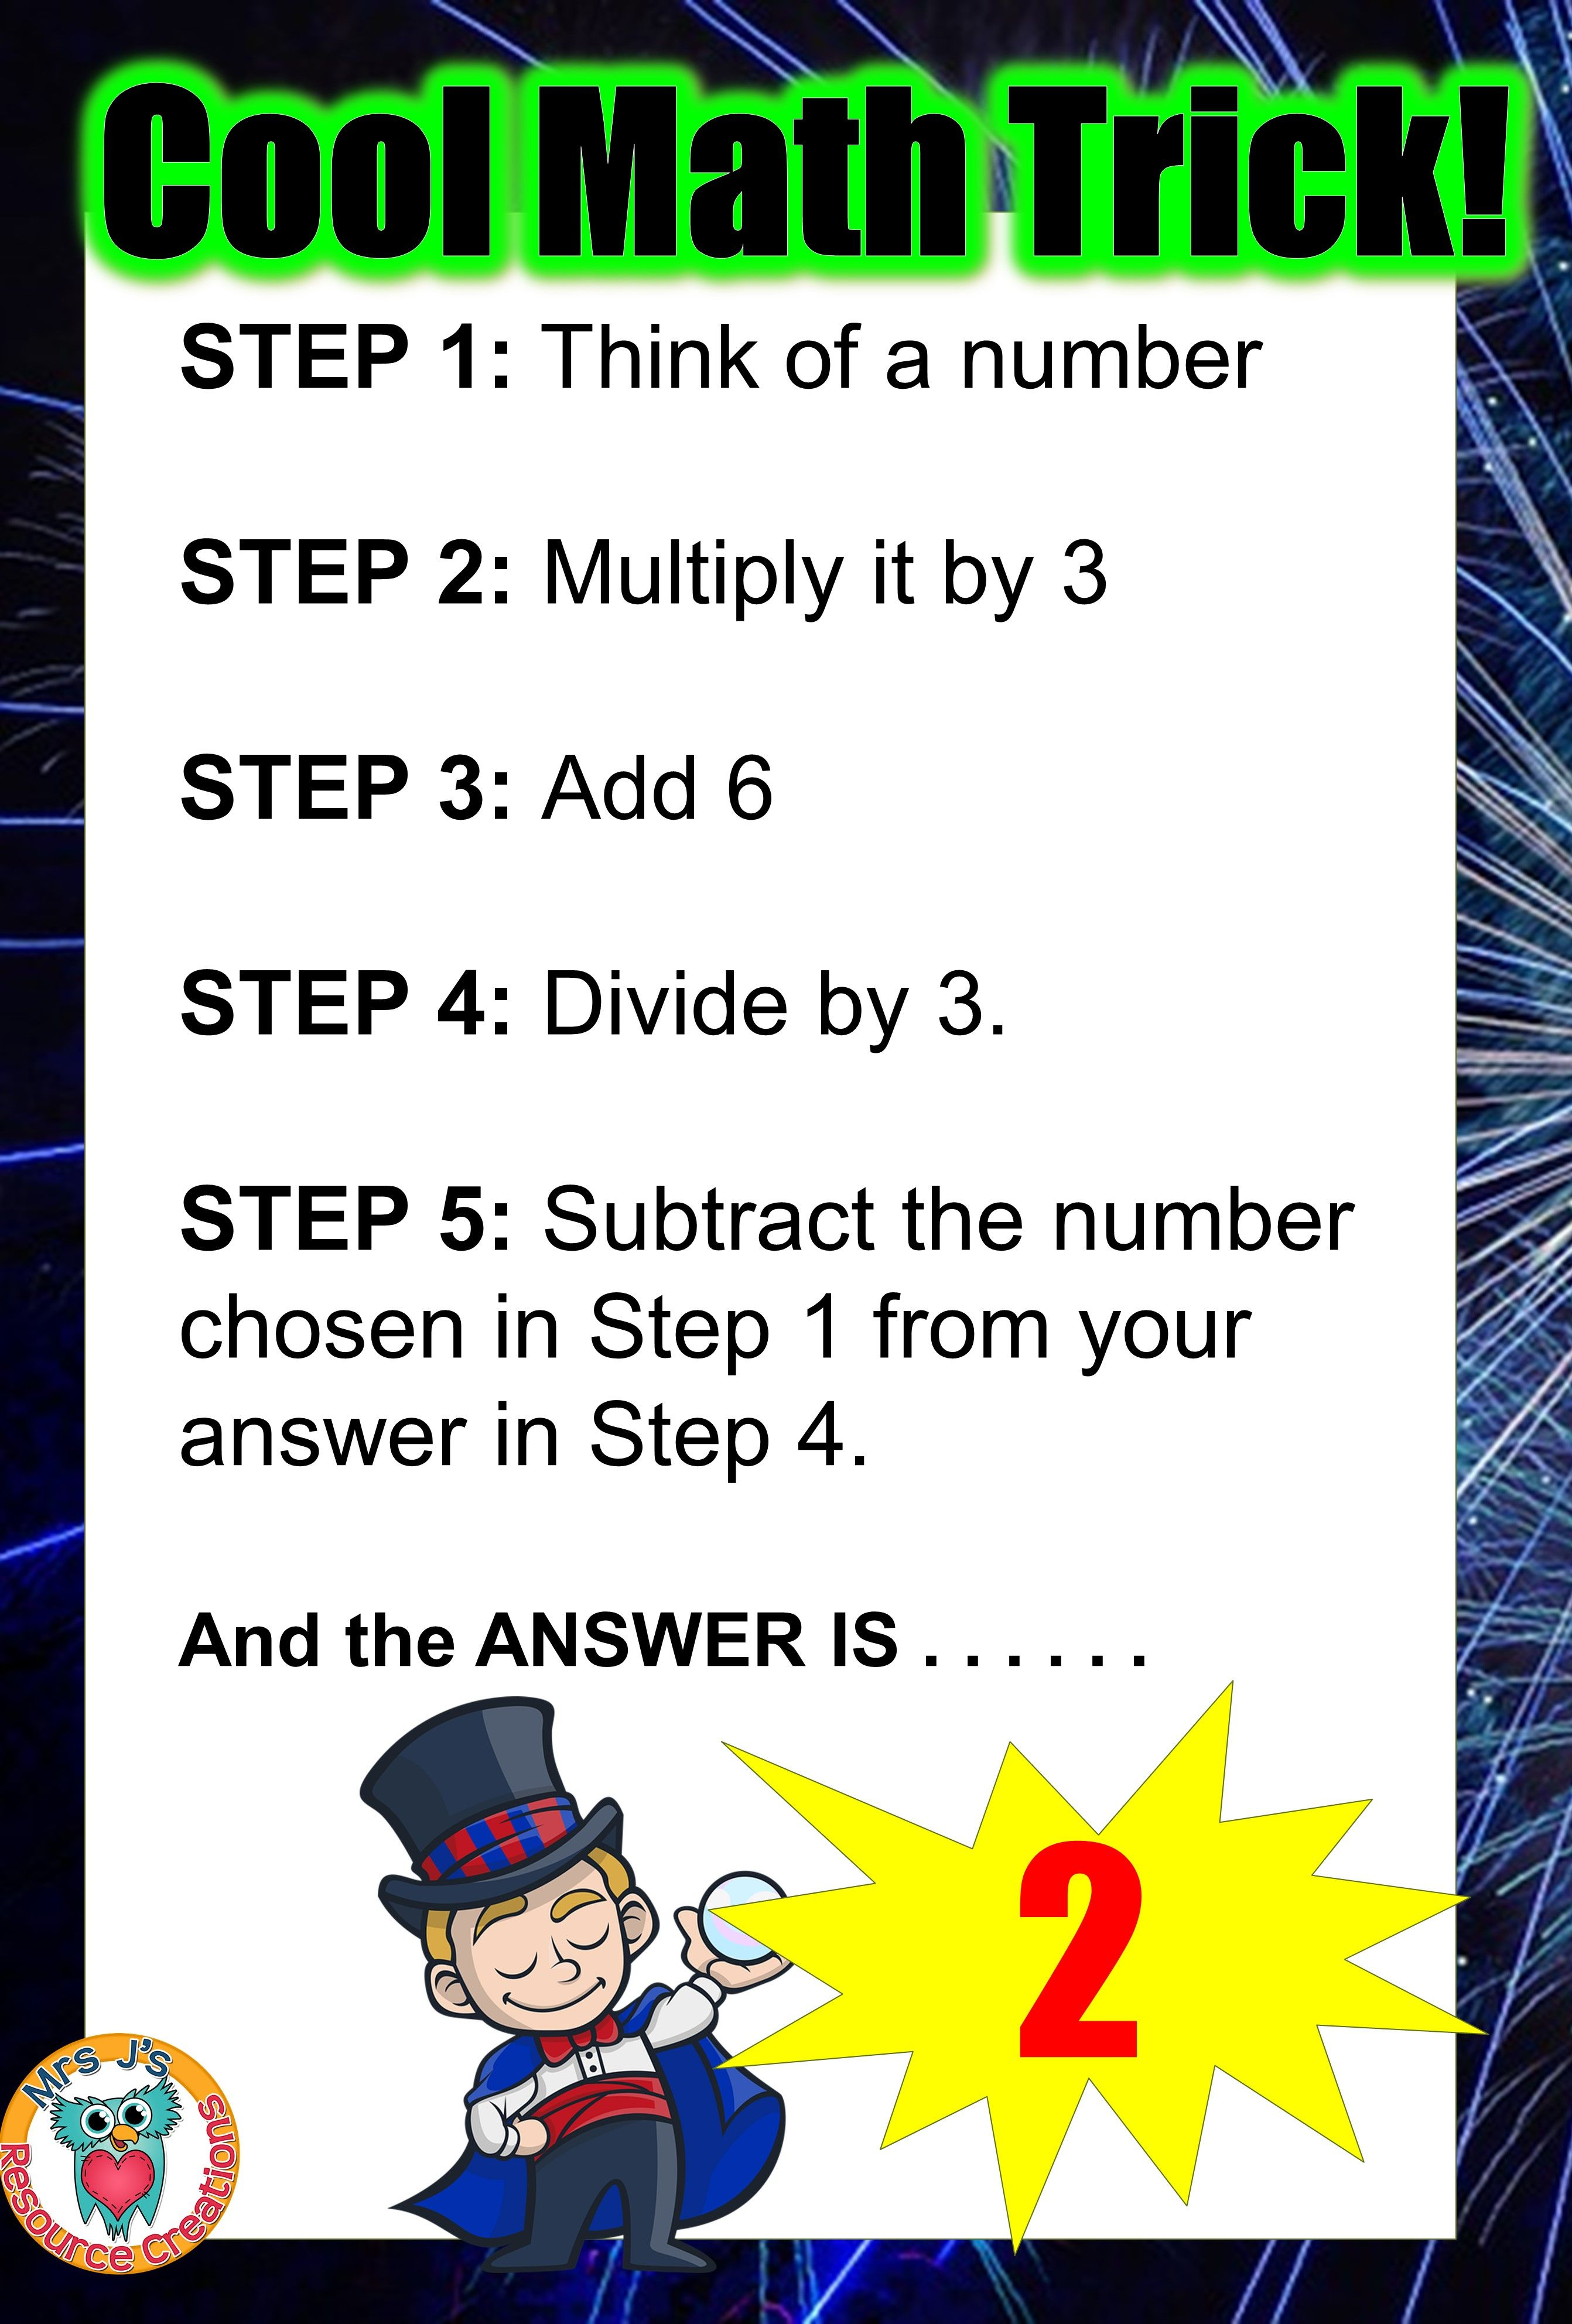 Cool Math Trick where your answer is always 2! For a fun